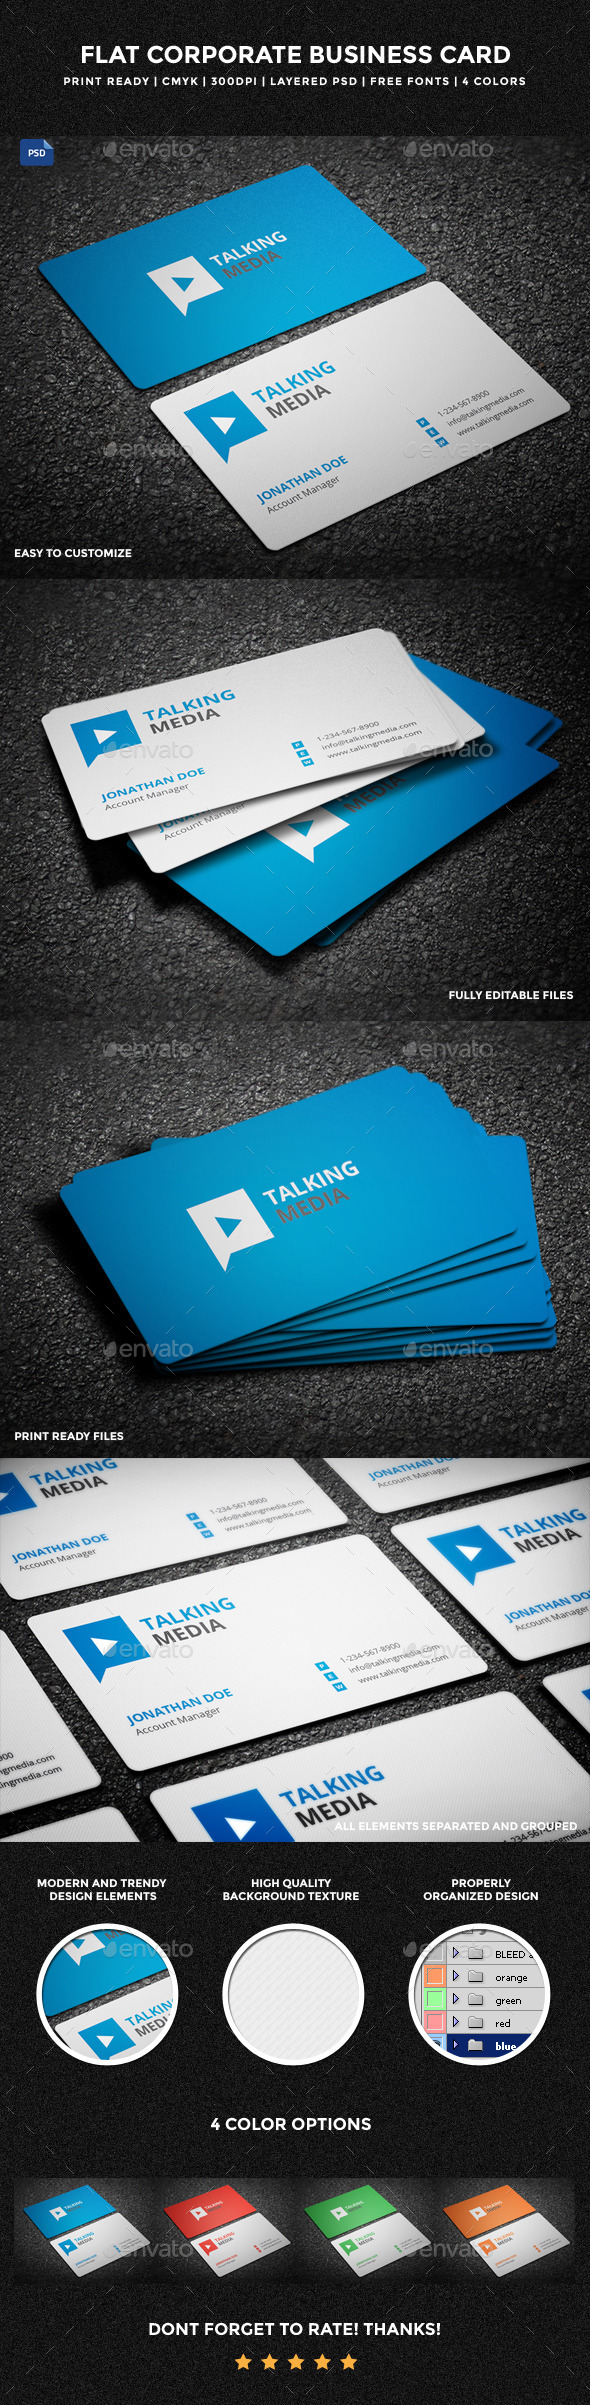 Flat Corporate Business Card - 13 - Corporate Business Cards